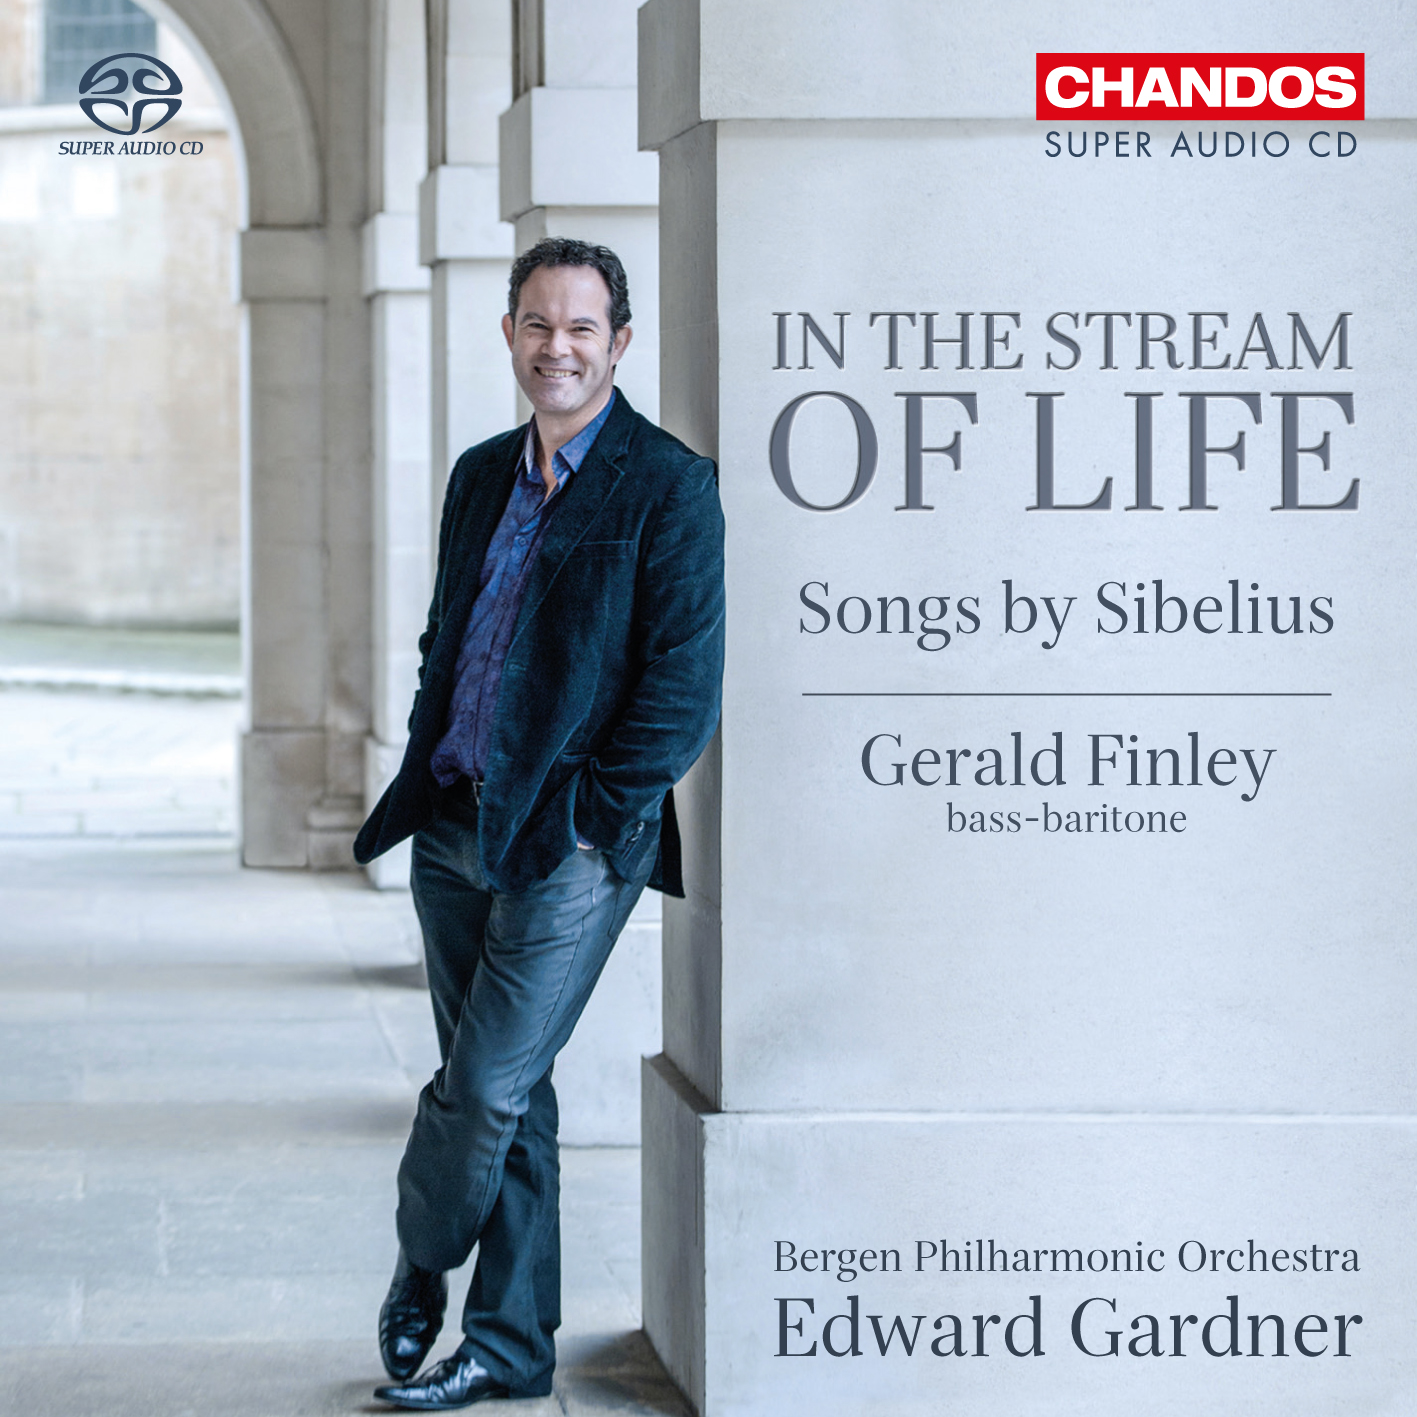 In the Stream of Life, Gerald Finley